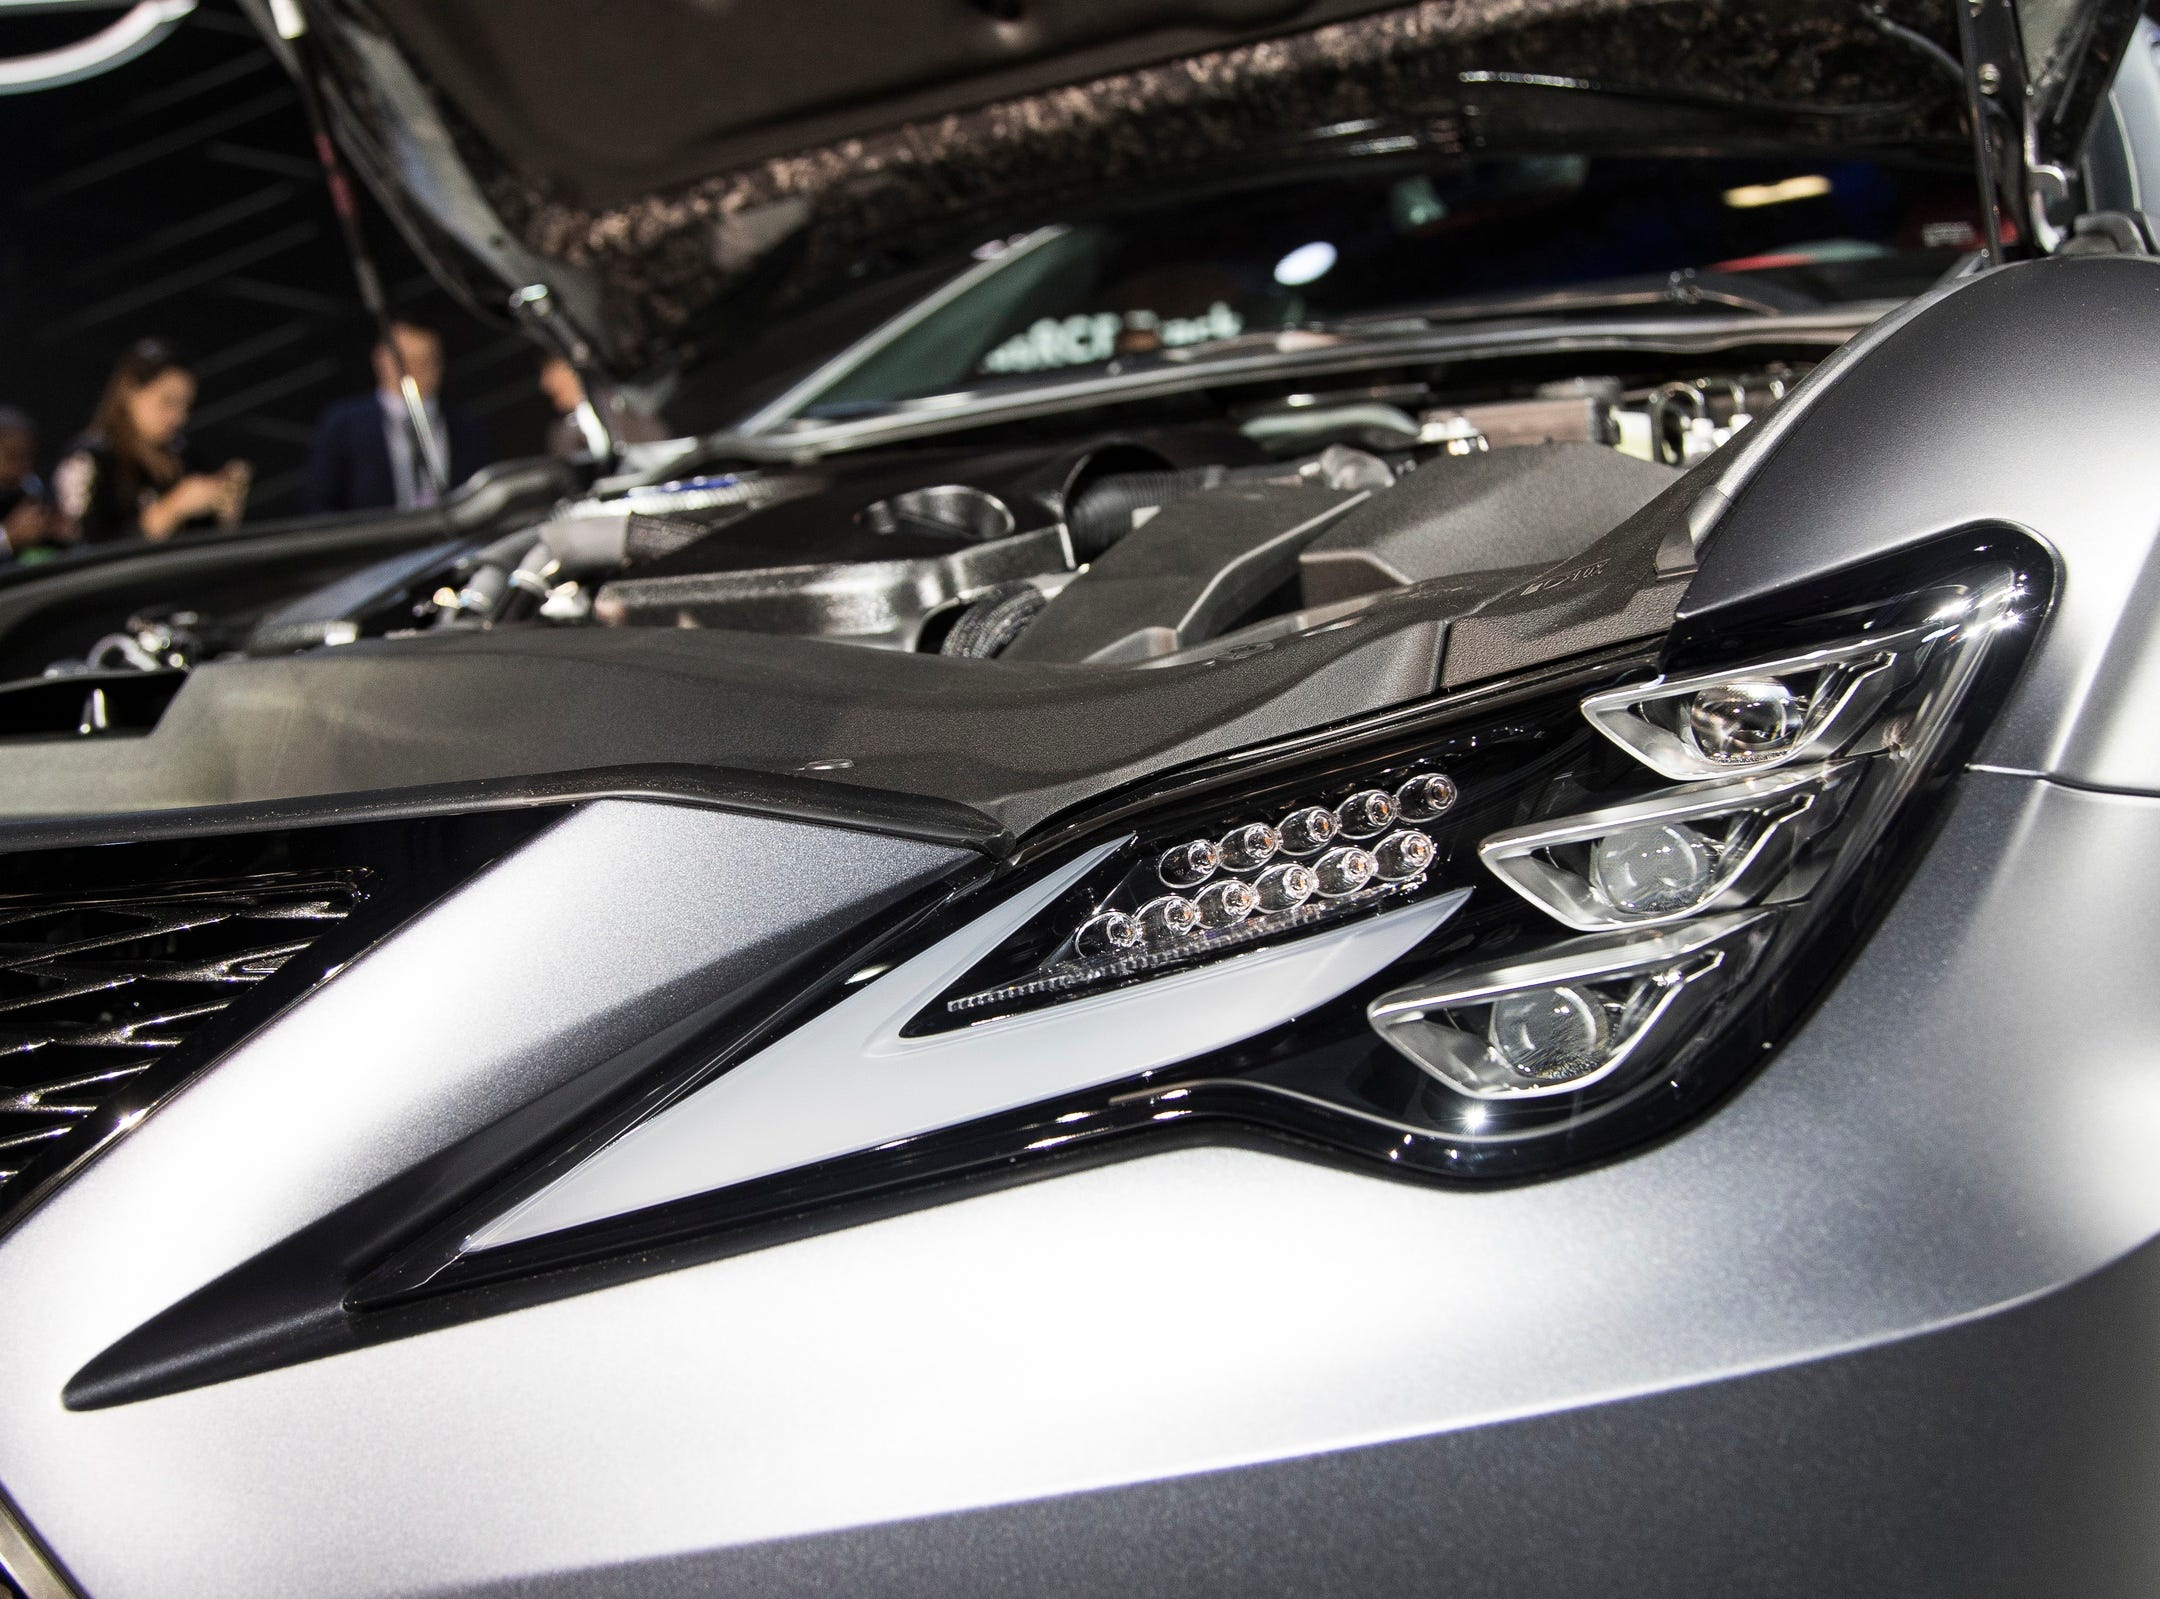 Front headlight of the Lexus RCF Track Edition during the 2019 North American International Auto Show held at Cobo Center in downtown Detroit on Monday, Jan. 14, 2019.